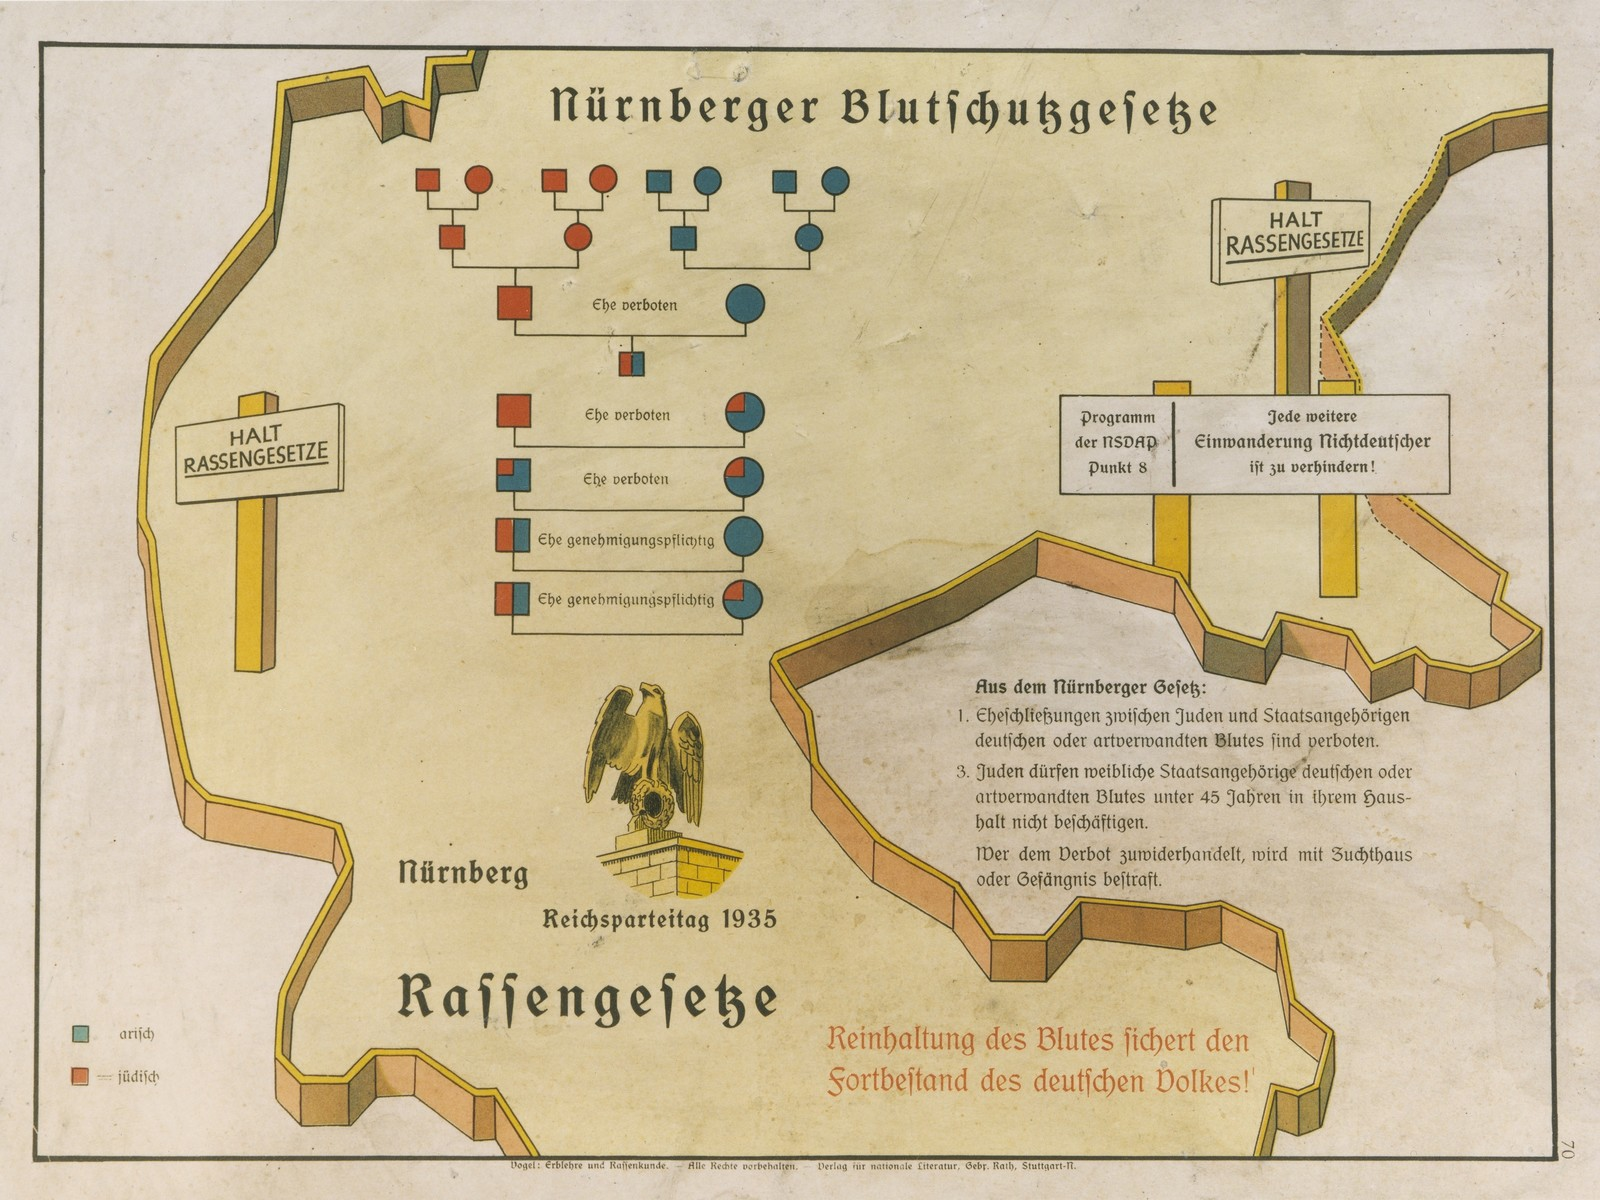 """Eugenics poster entitled """"The Nuremberg Law for the Protection of Blood and German Honor.""""   The illustration is a stylized map of the borders of central Germany on which is imposed a schematic of the forbidden degrees of marriage between Aryans and non-Aryans, point 8 of the Nazi party platform (against the immigration of non-Ayrans into Germany), and the text of the Law for the Protection of German Blood.  The German text at the bottom reads, """"Maintaining the purity of blood insures the survival of the German people.""""   This poster is no.70 in a series entitled, """"Erblehre und Rassenkunde"""" (Theory of Inheritance and Racial Hygiene), published by the Verlag für nationale Literatur (Publisher for National Literature), Stuttgart."""